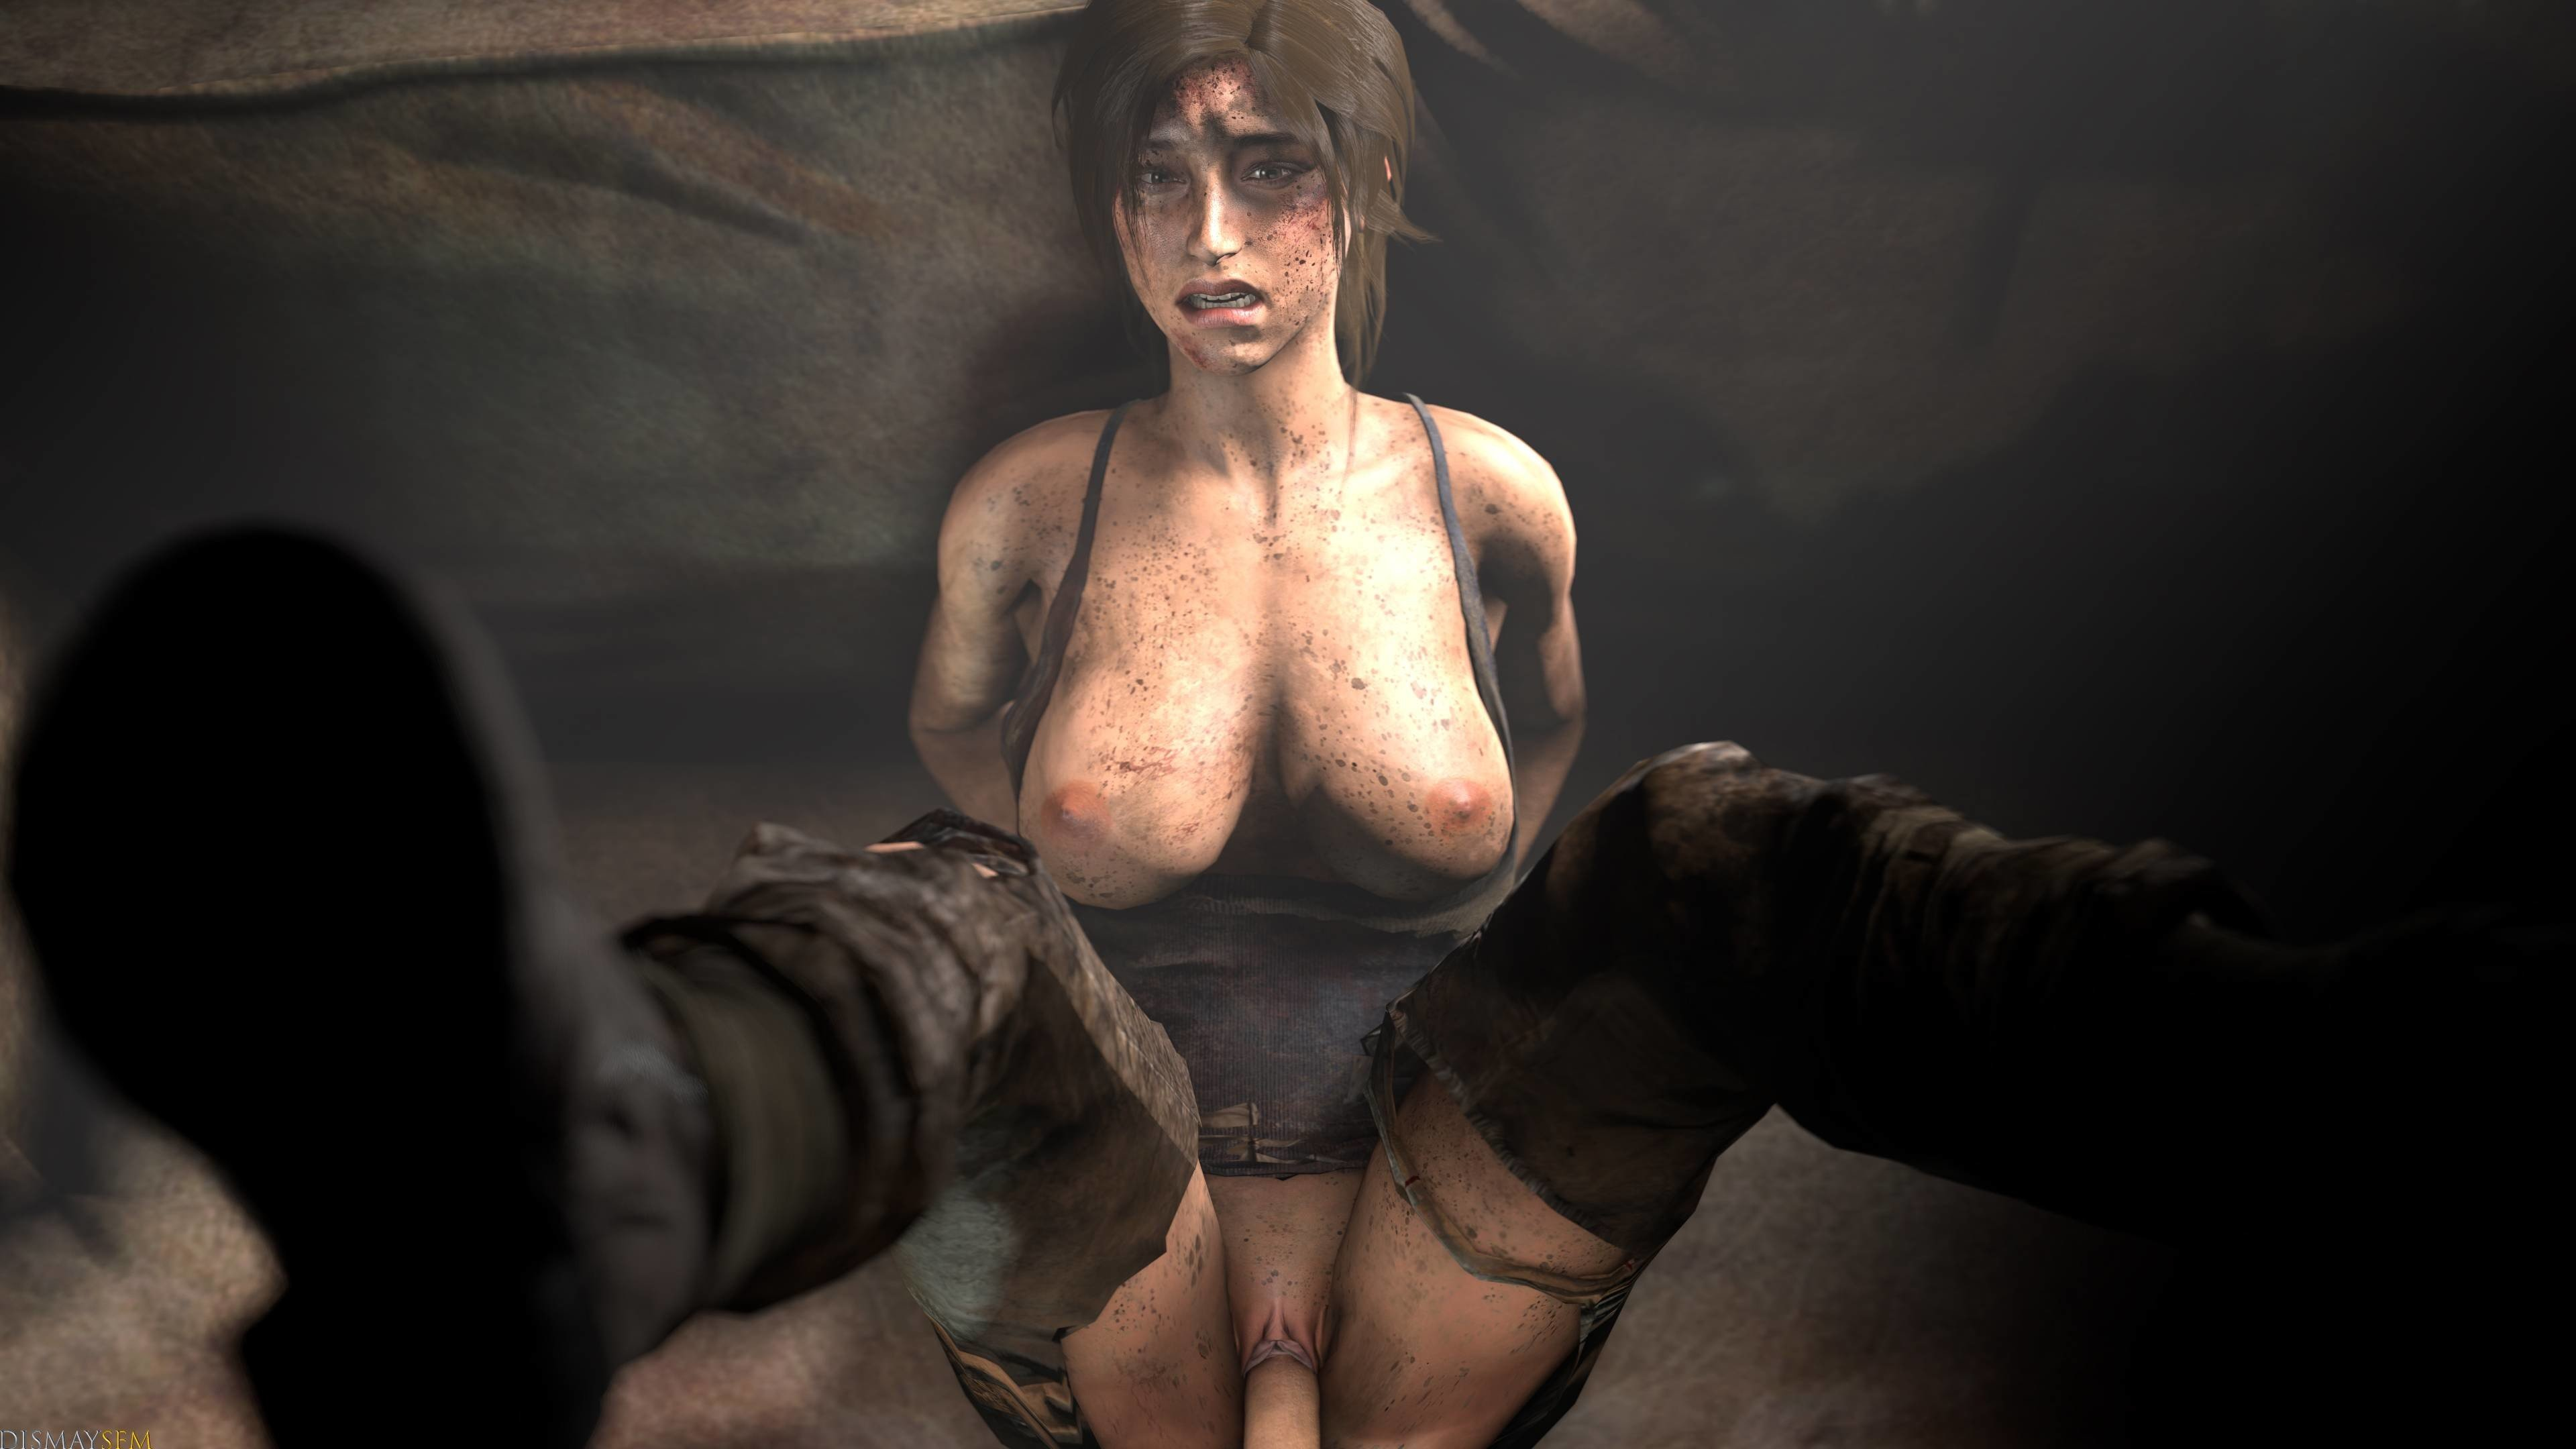 Lara croft sex naked — photo 9